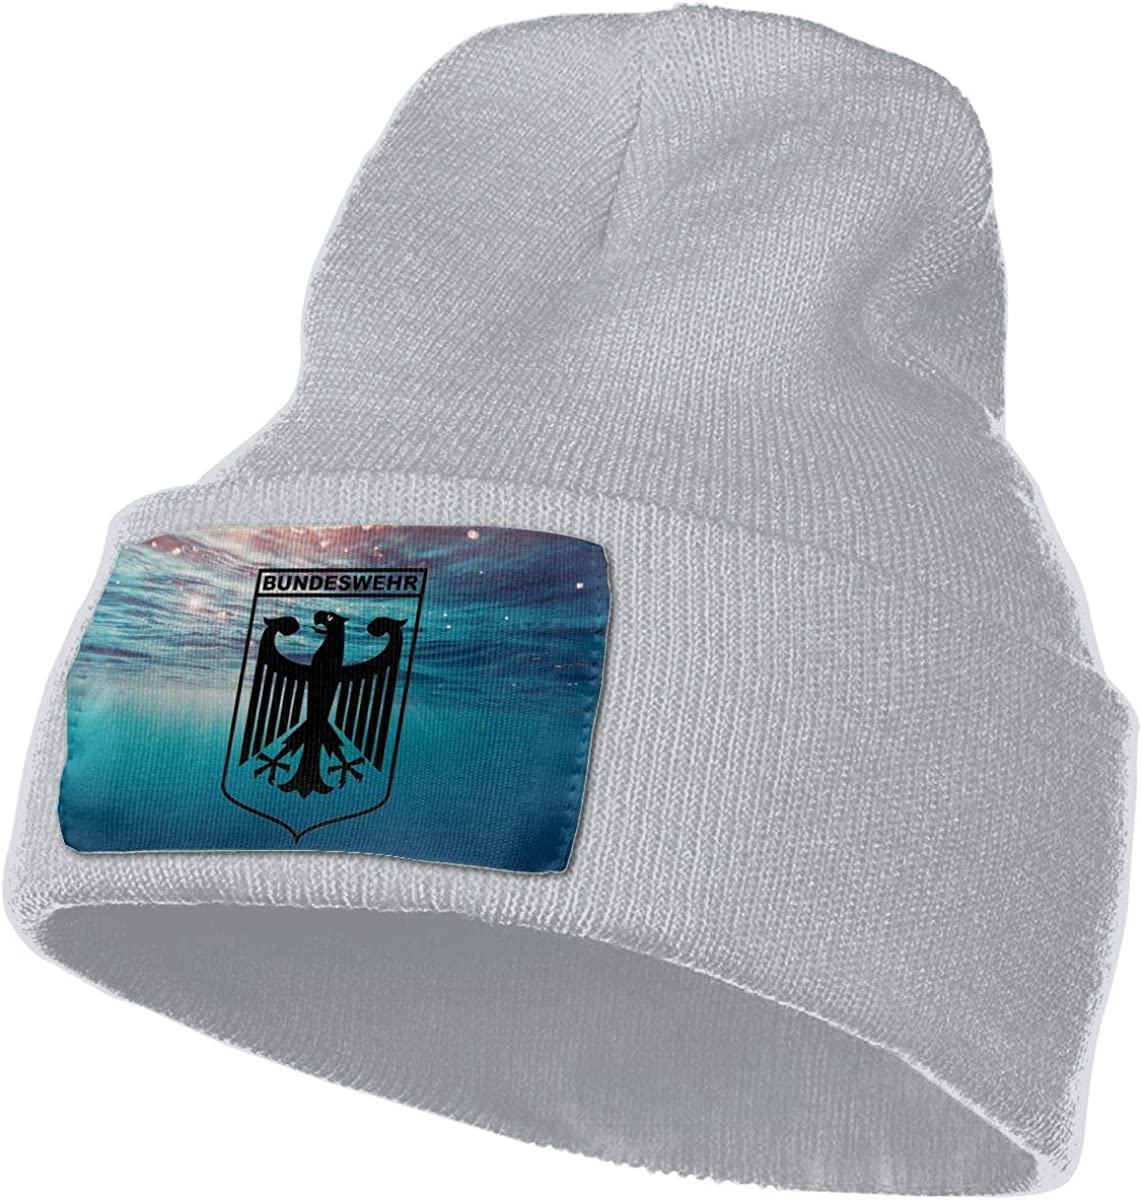 Helidoud Bundeswehr Logo with Text Winter Beanie Hat Knit Skull Cap for for Men /& Women